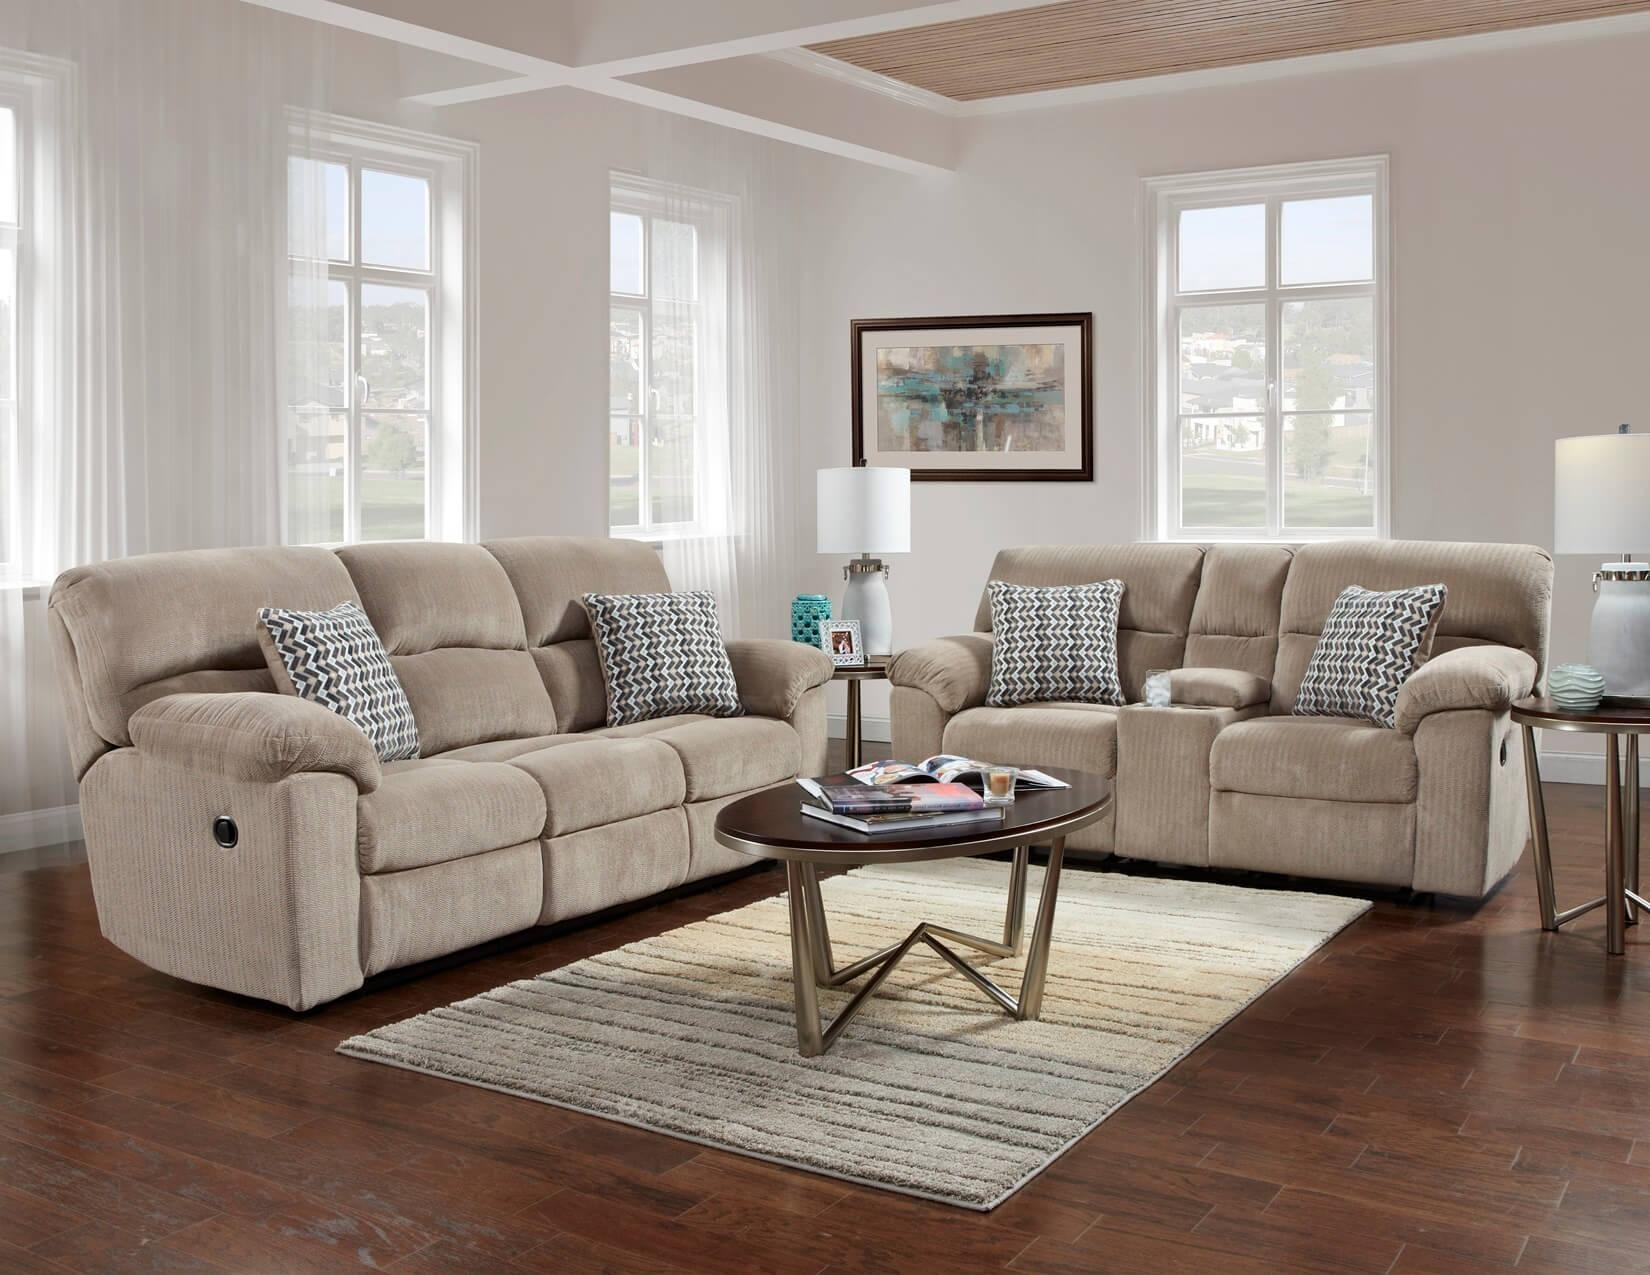 Chevron Seal Reclining Sofa And Loveseat | Reclining Living Room Sets Pertaining To Reclining Sofas And Loveseats Sets (Image 2 of 20)